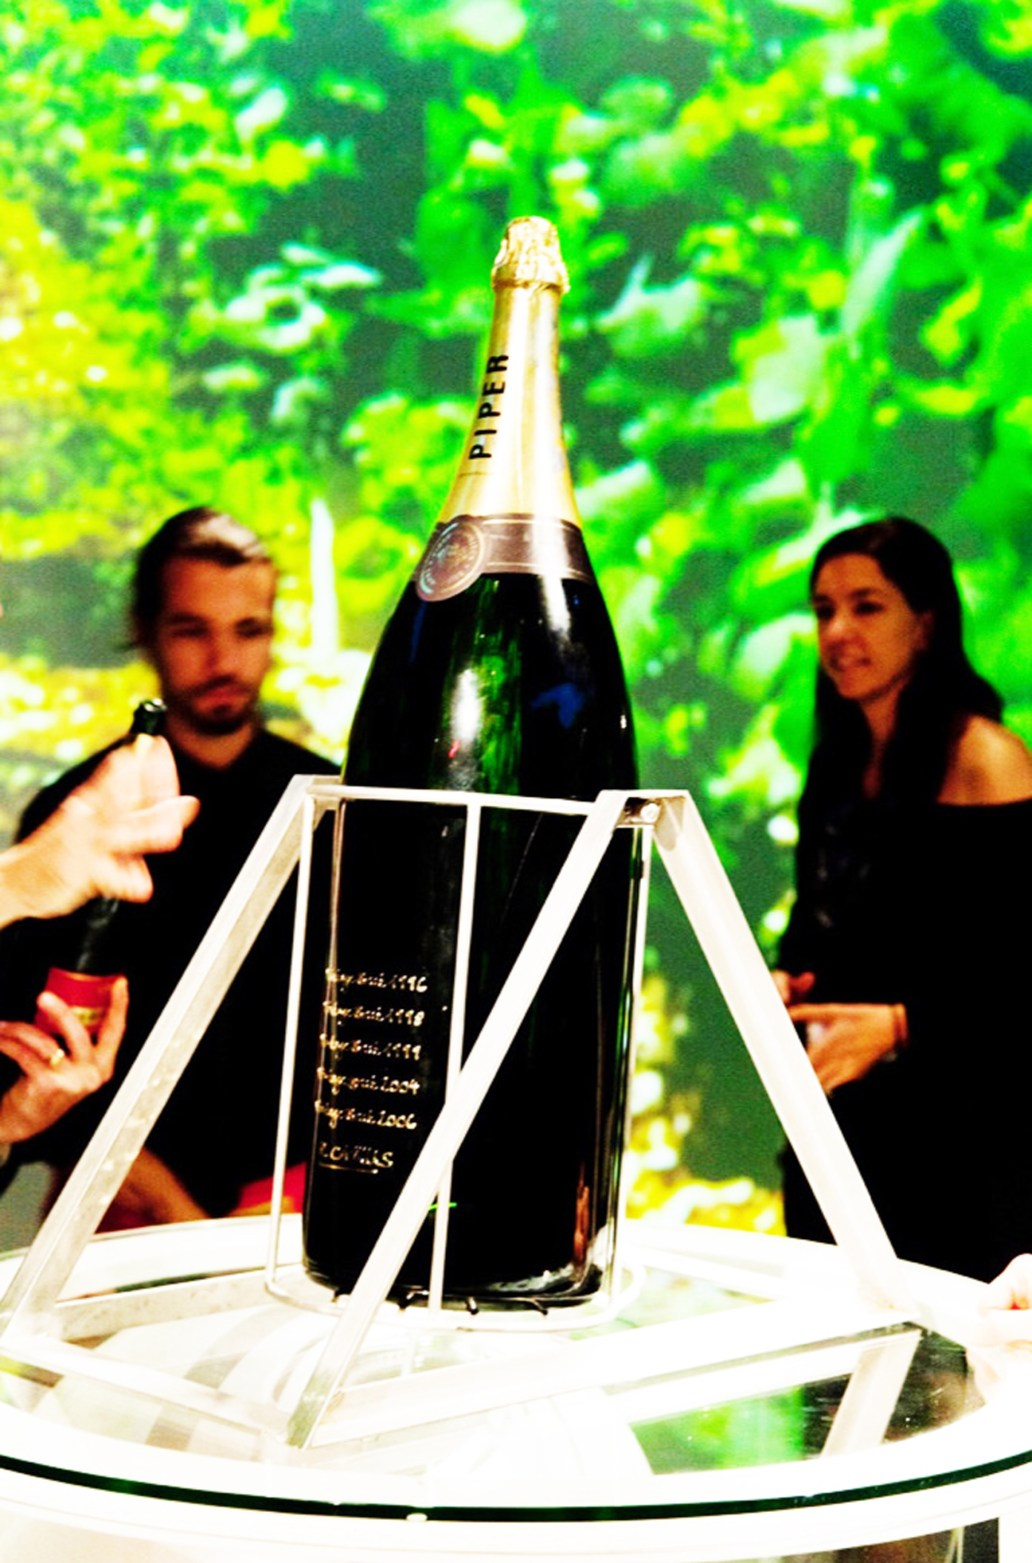 360 Immersive Champagne Experience